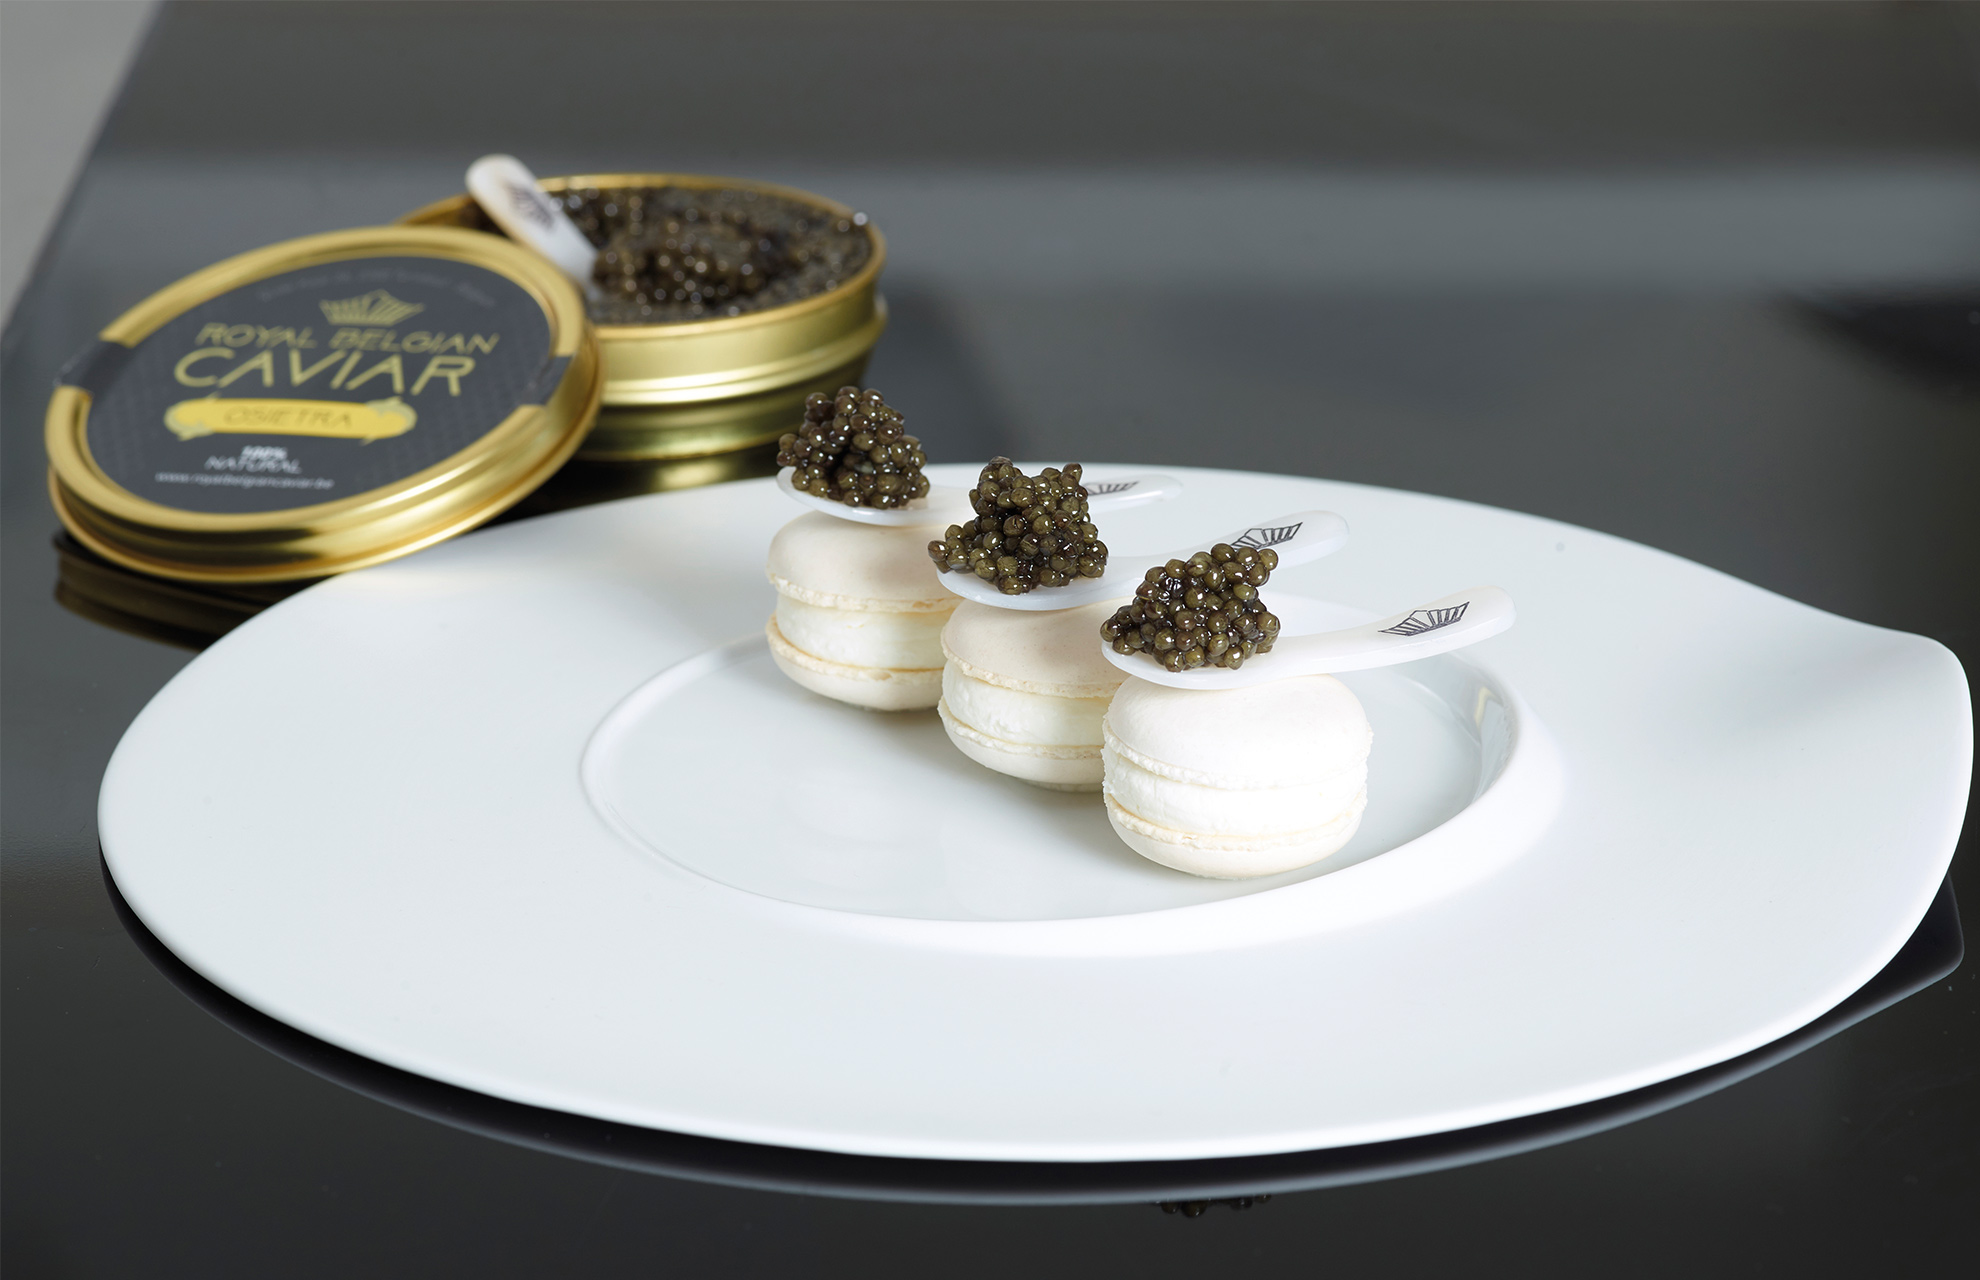 Royal Belgian Caviar 2